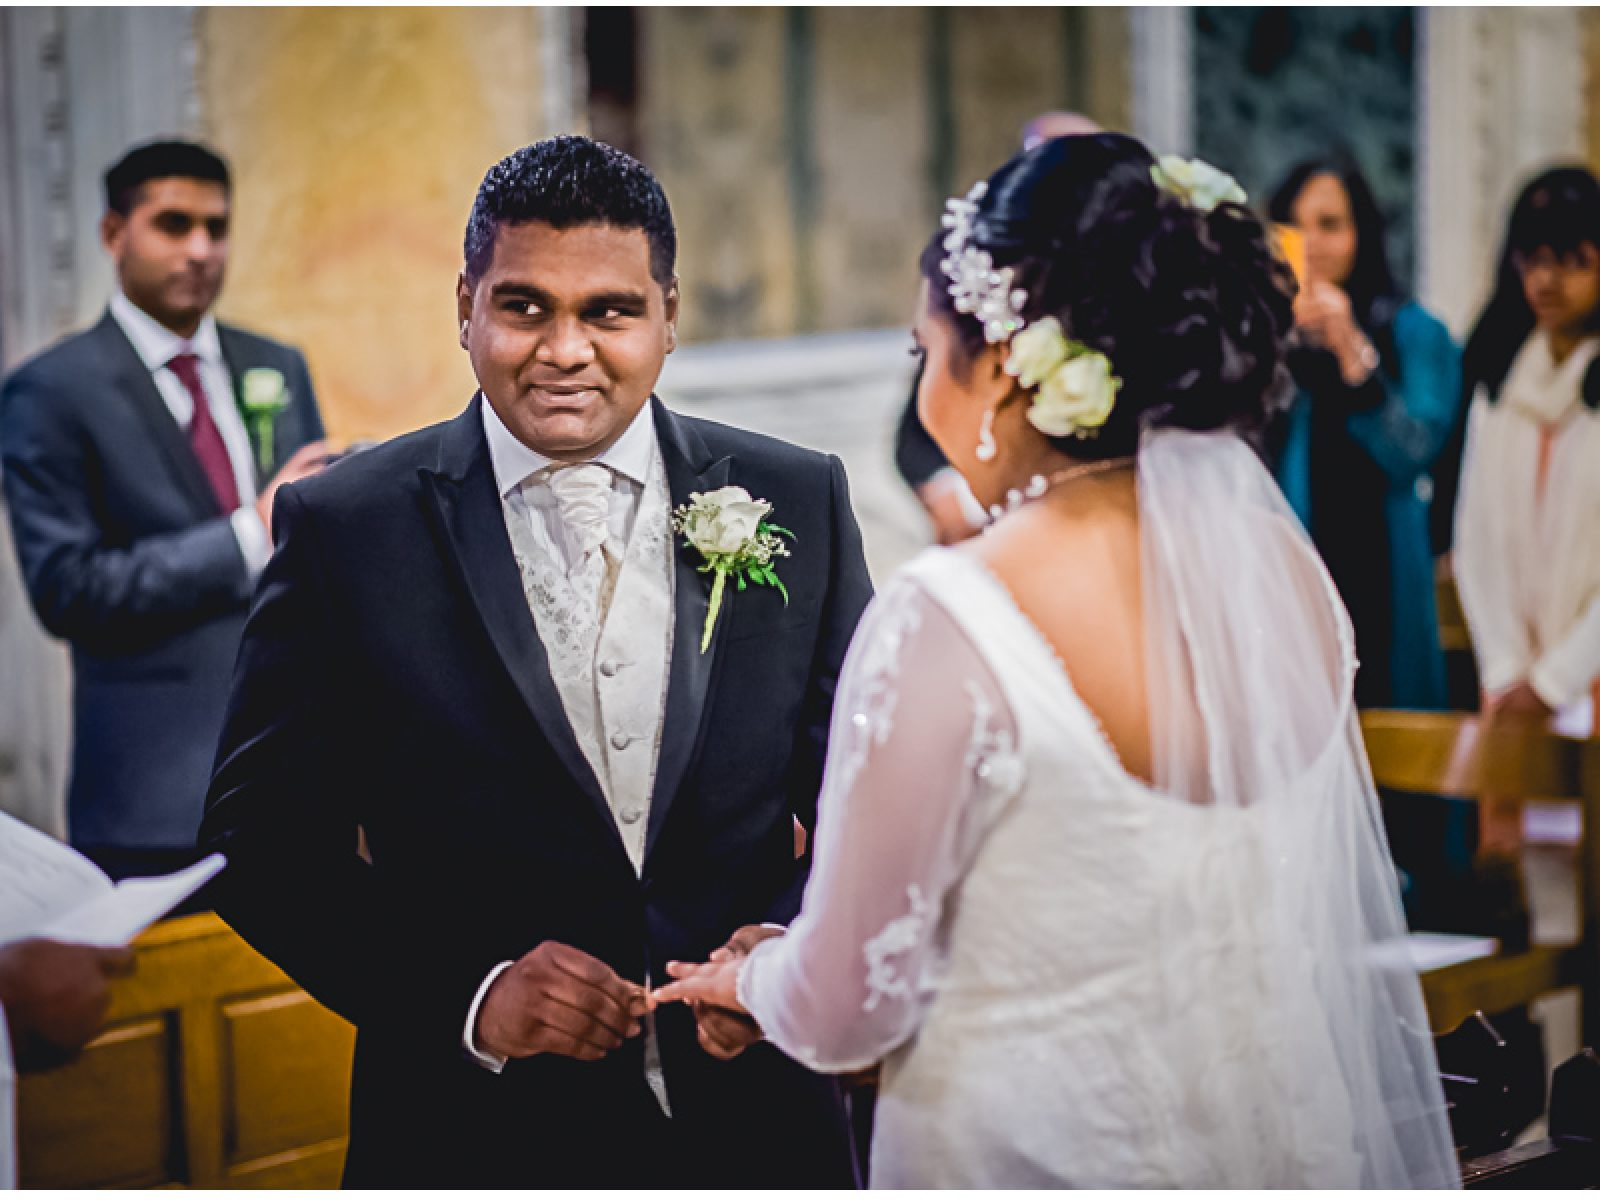 551 1600x1200 - Darshani and Anthony - wedding photographer in London